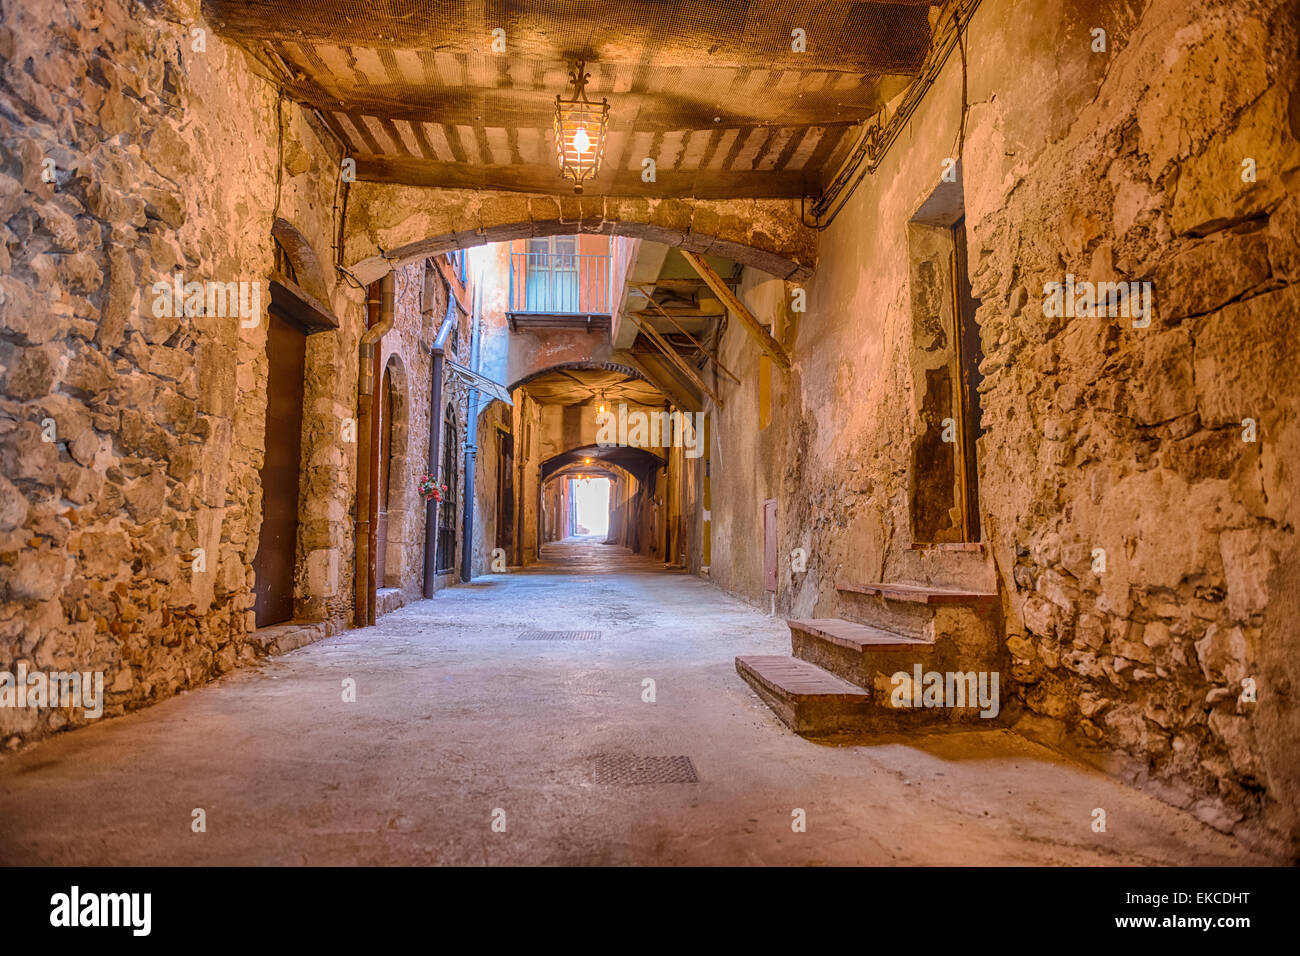 Rue Obscure, an underground street in Villefranche-sur-Mer - Stock Image